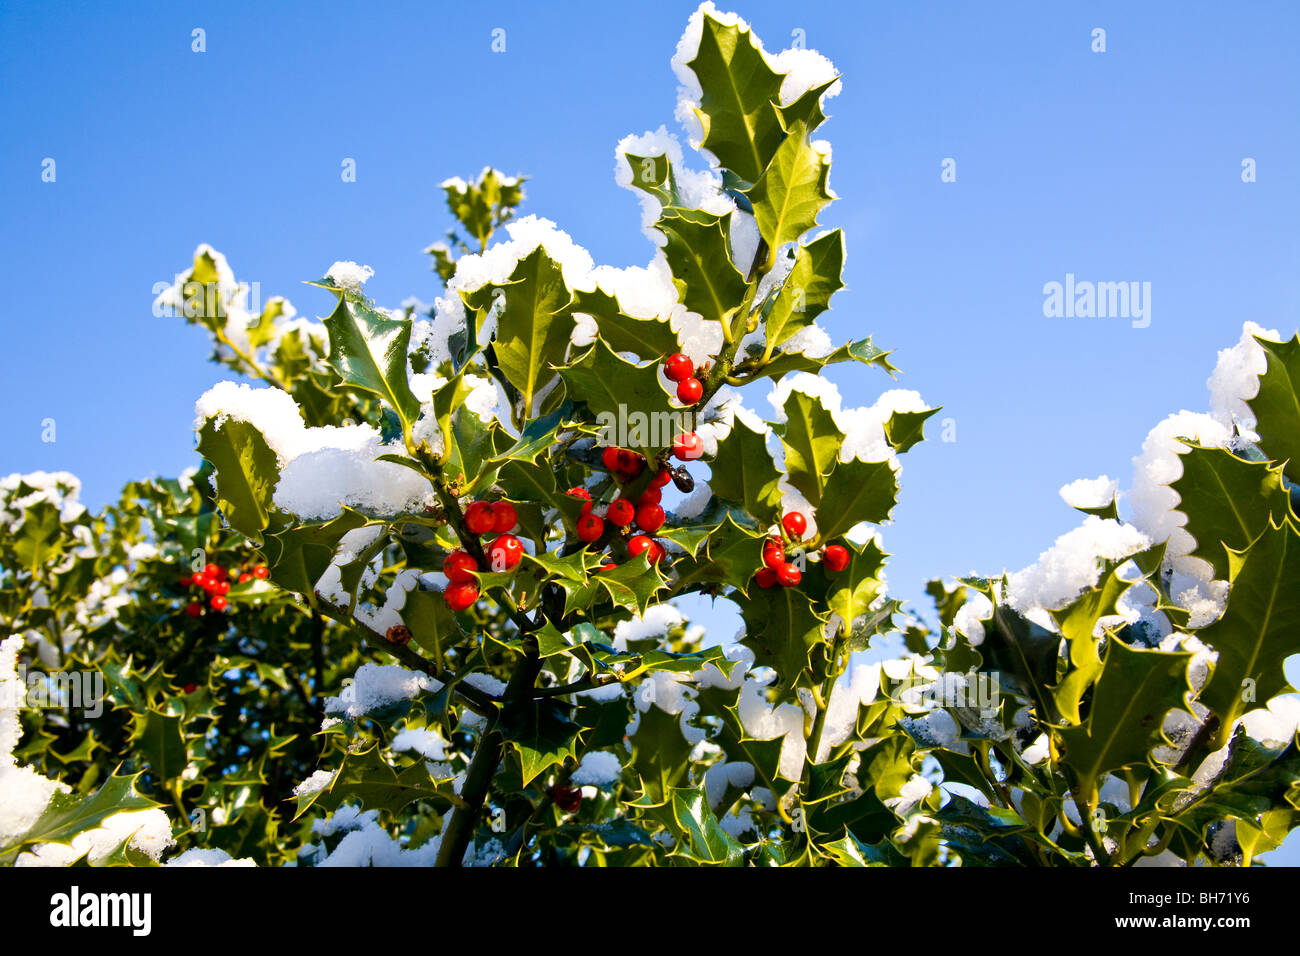 Christmas holly under snow - Stock Image